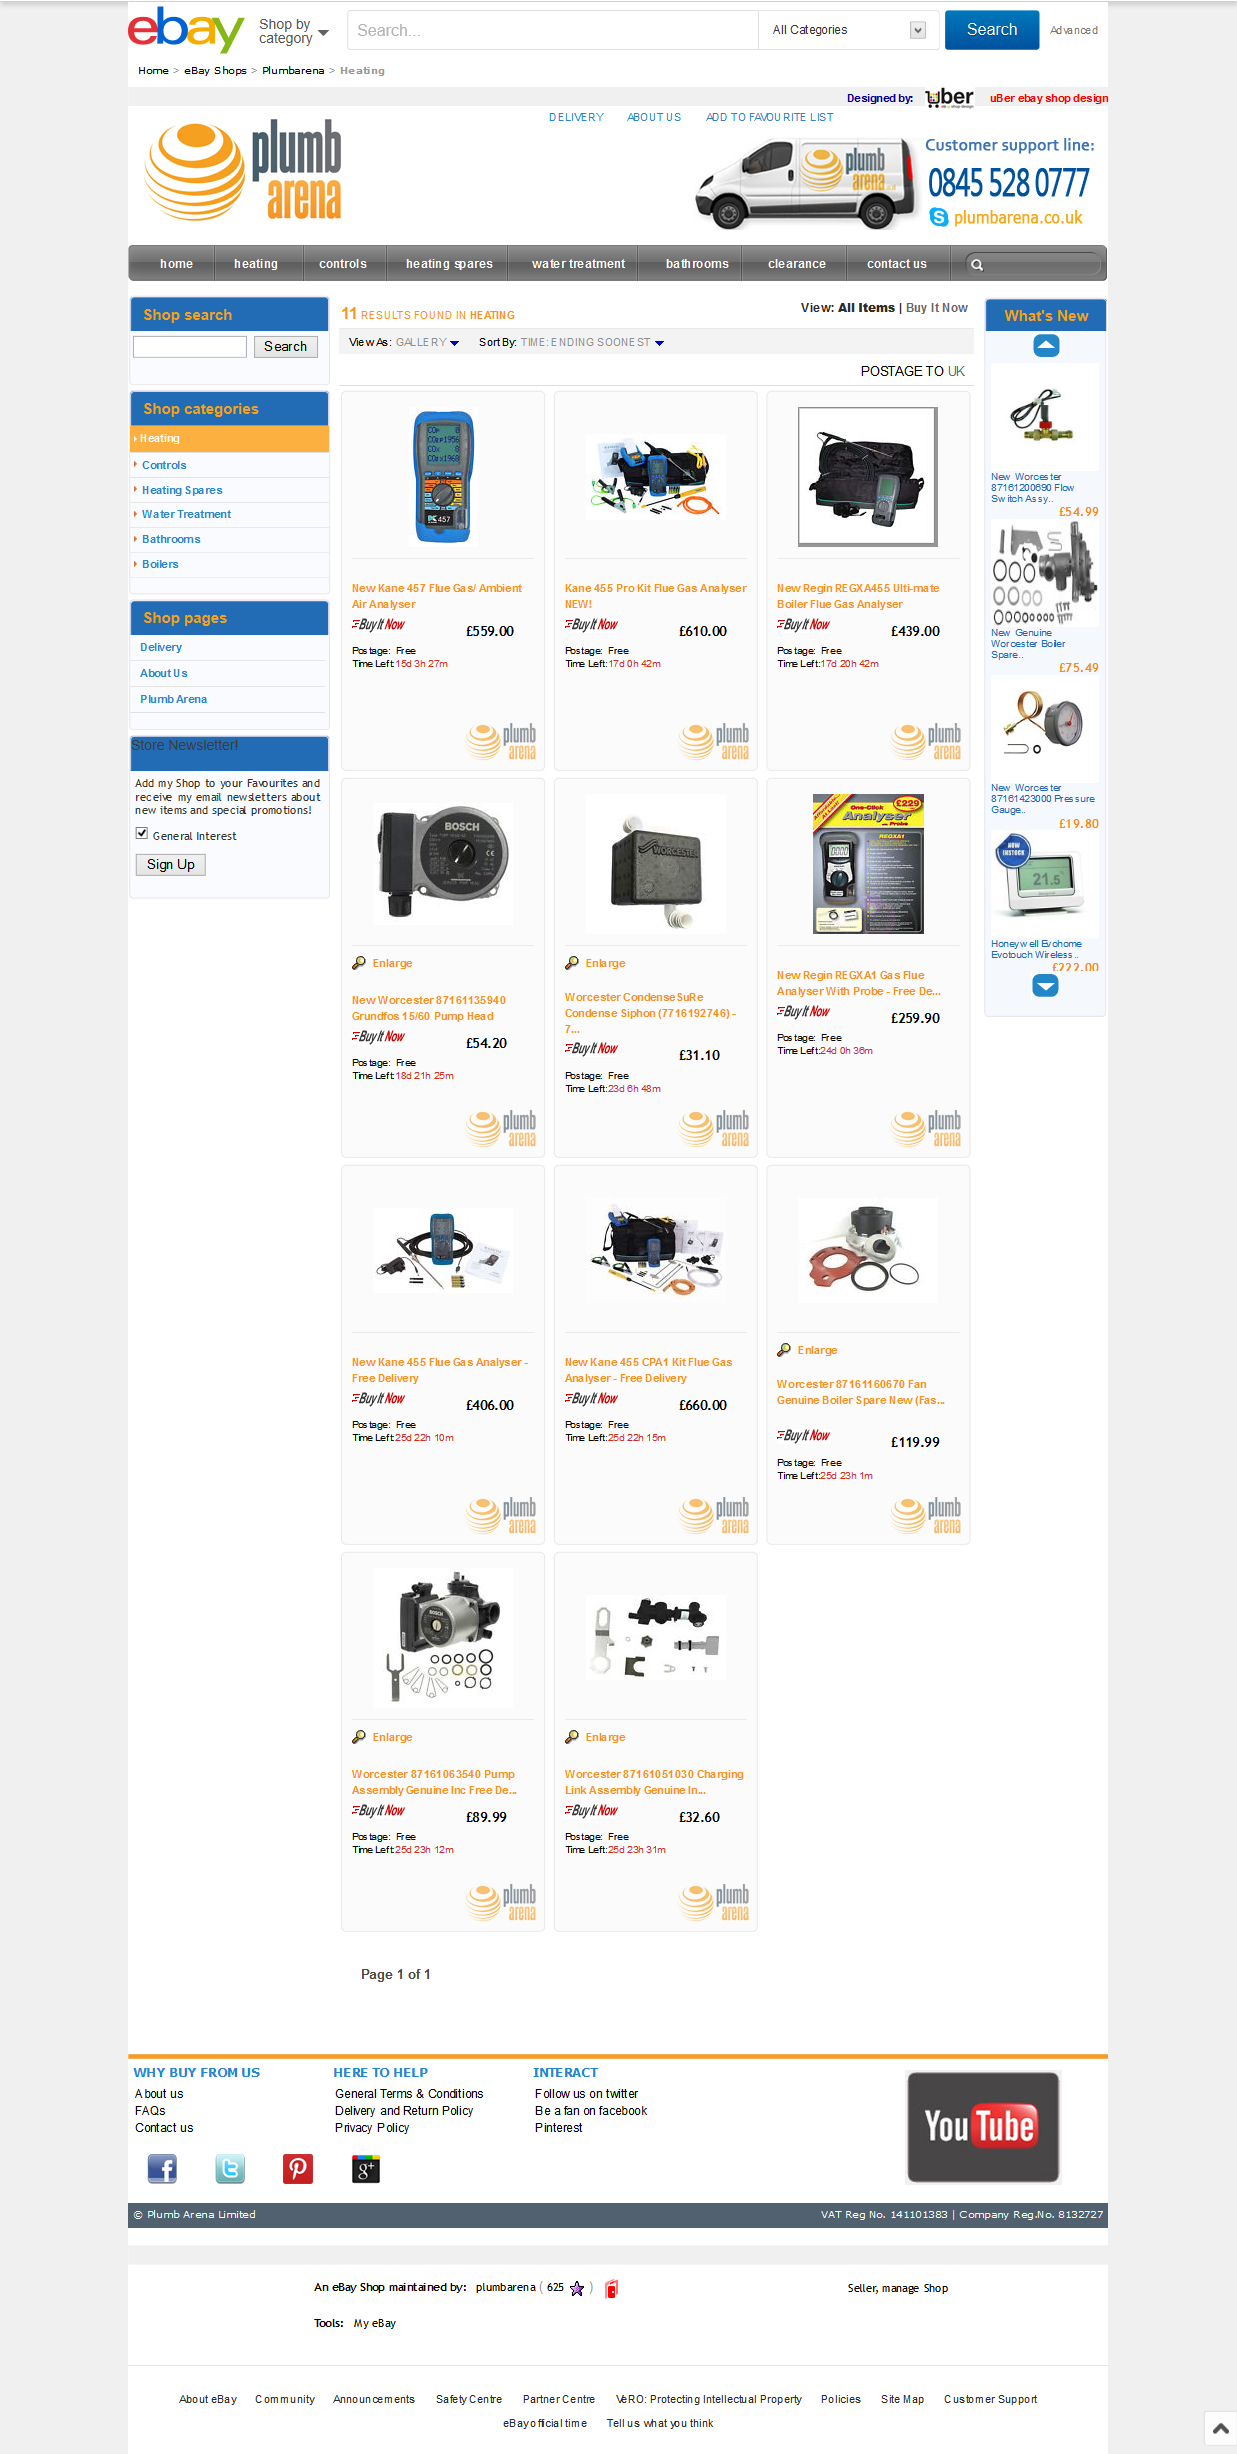 Plumbarena ebay shop design category view